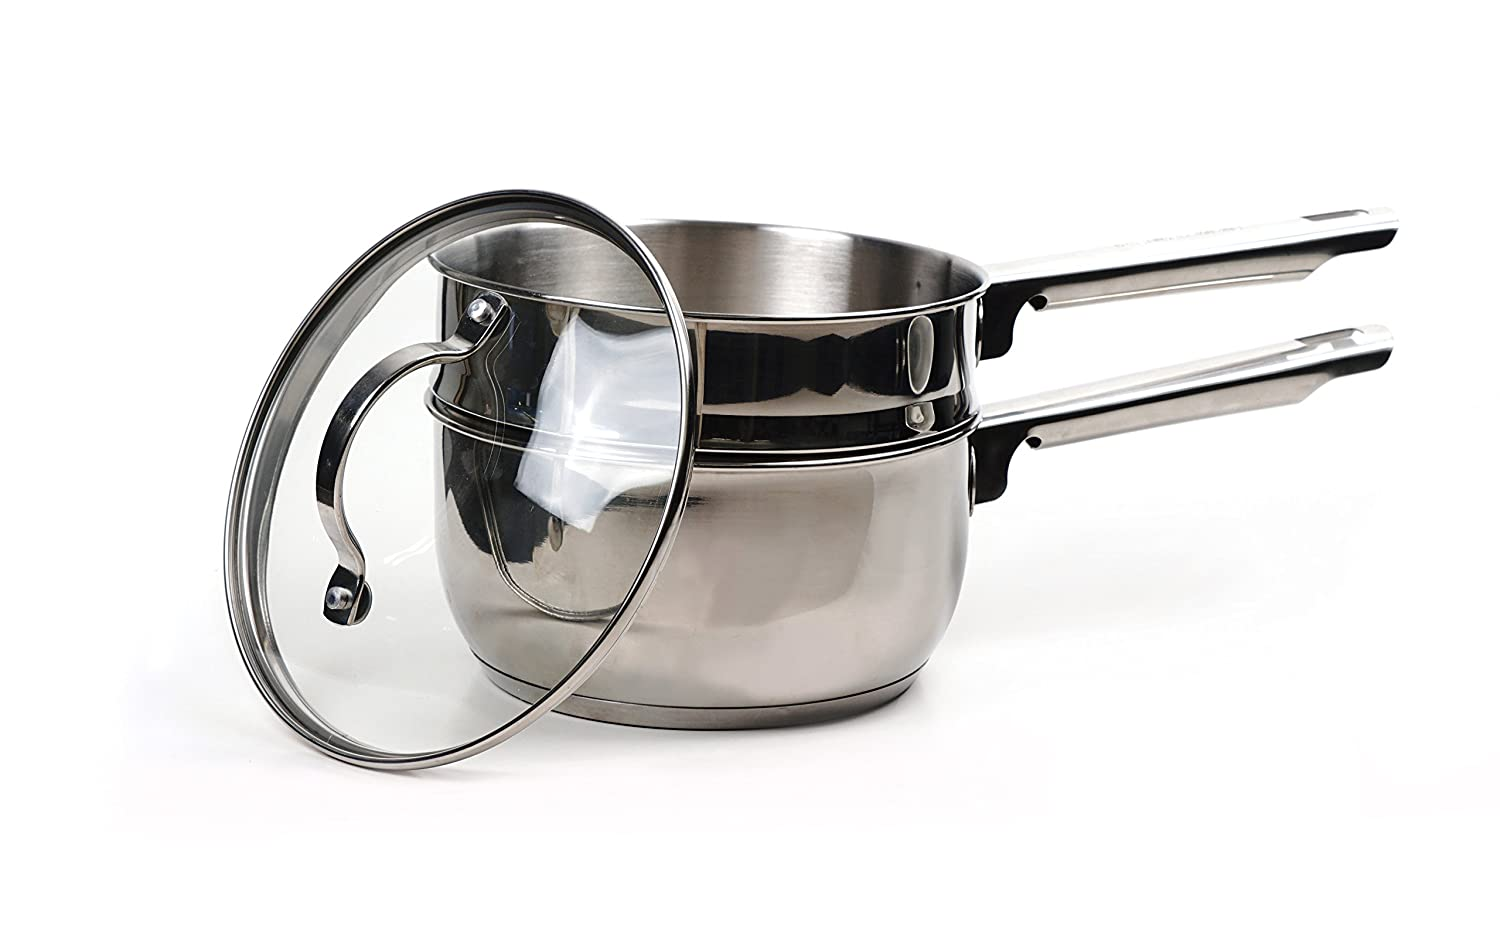 RSVP Endurance 2-Quart Stainless Steel Induction Double Boiler TDB 2IN